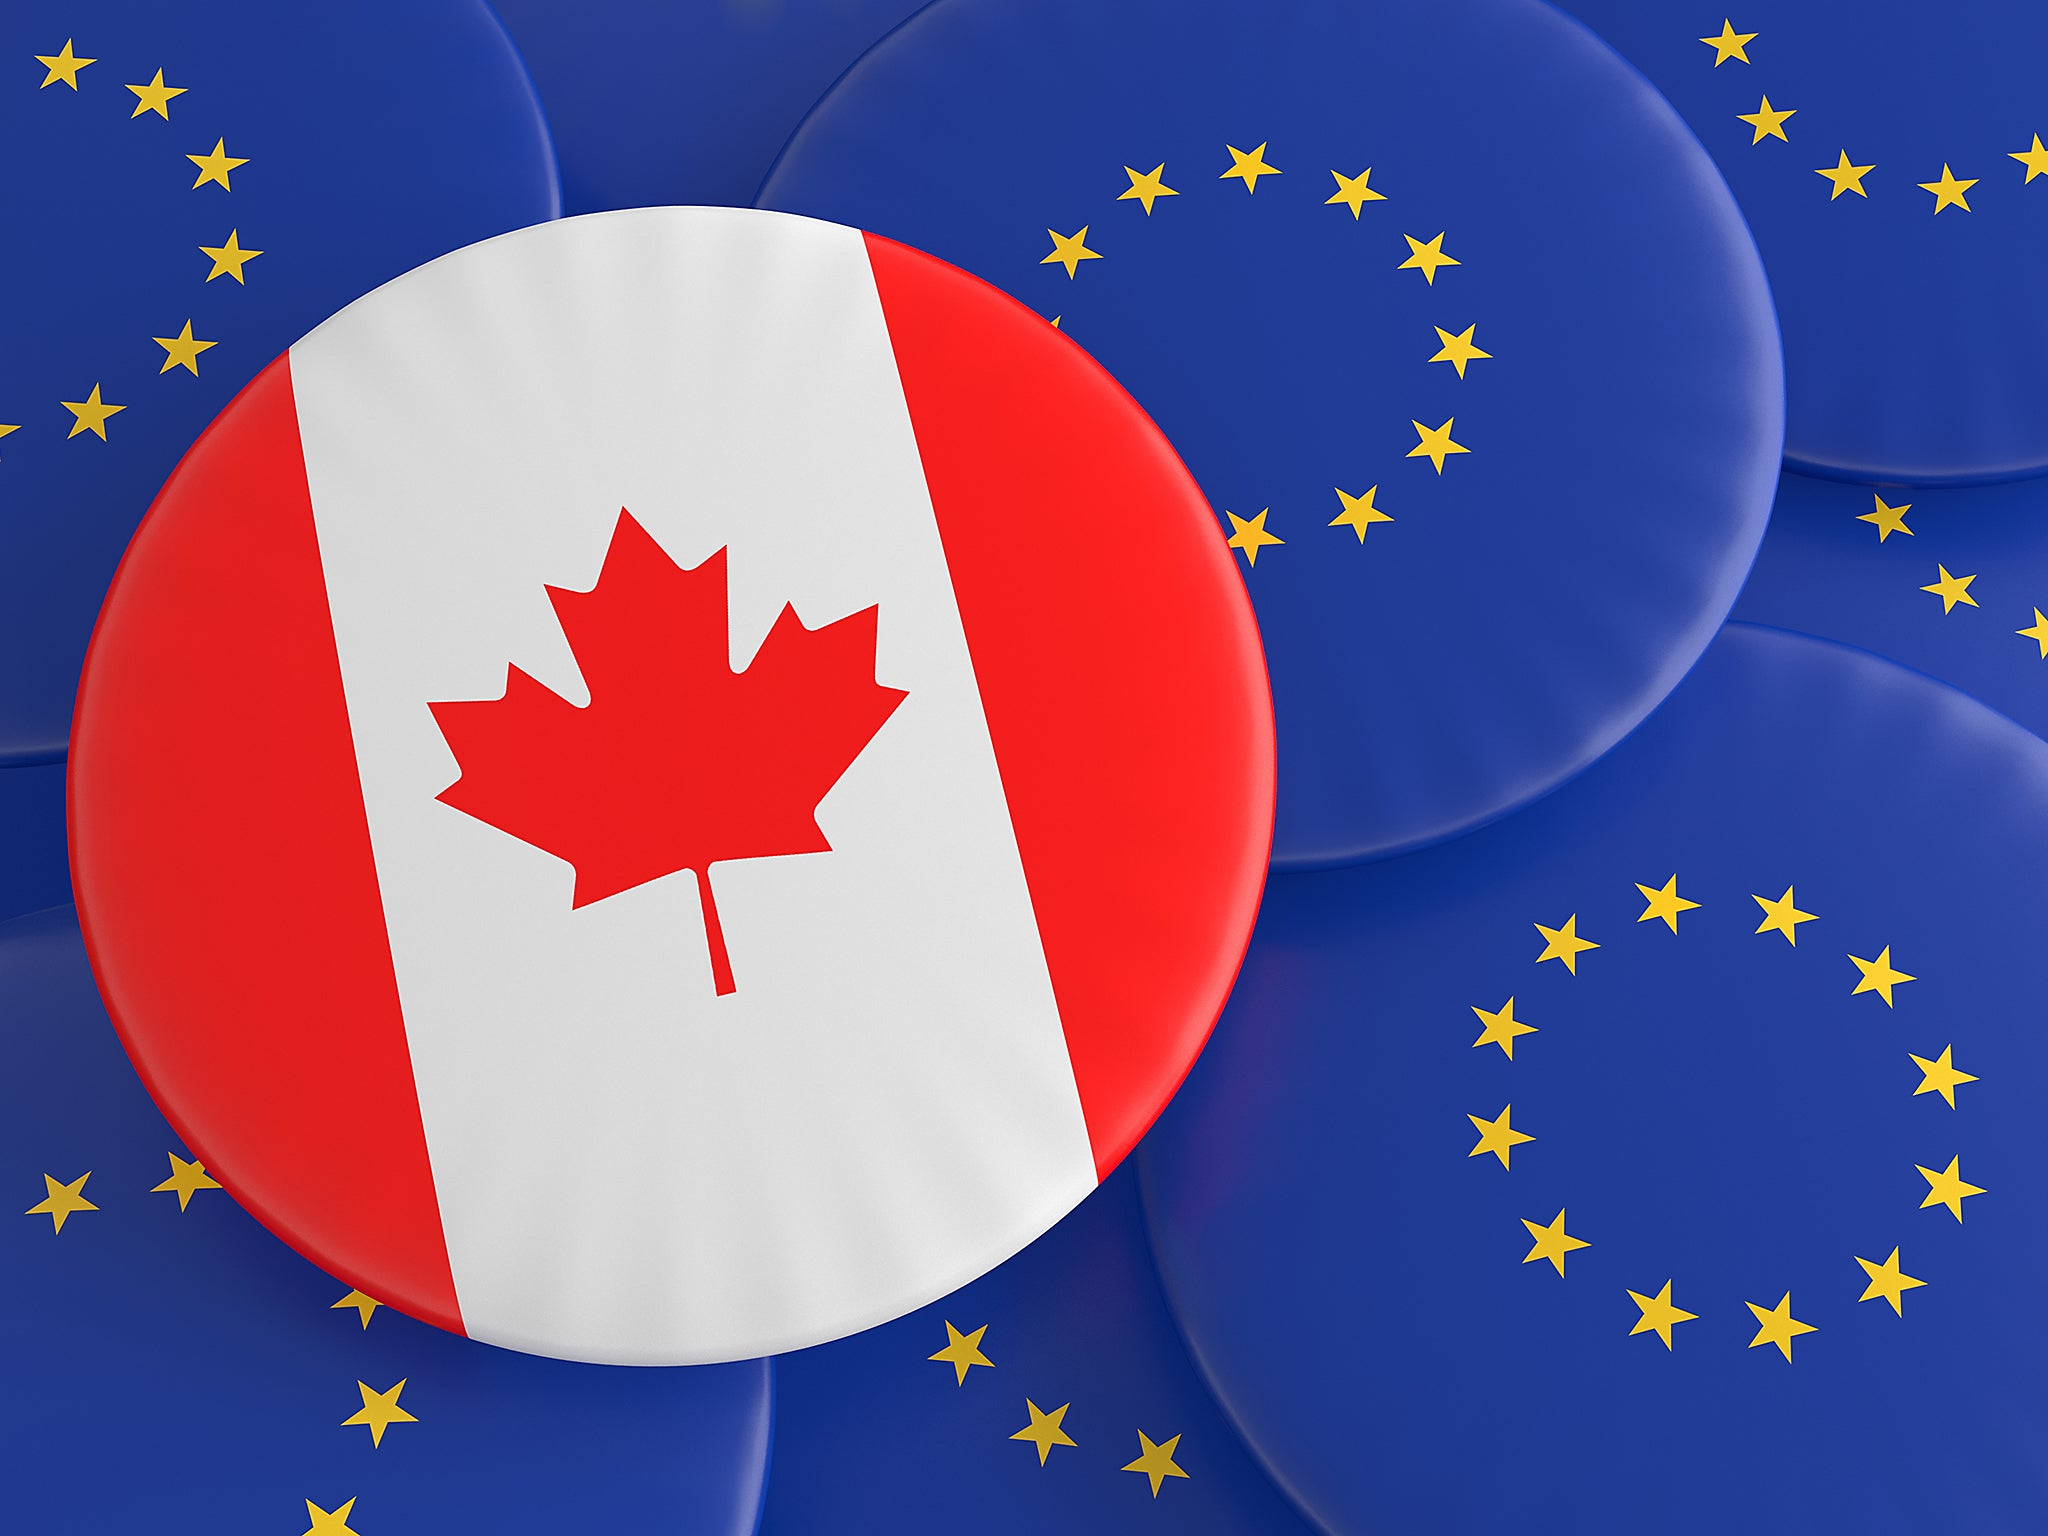 Ceta trade deal between EU and Canada will cost 300,000 jobs and cause greater inequality, study says